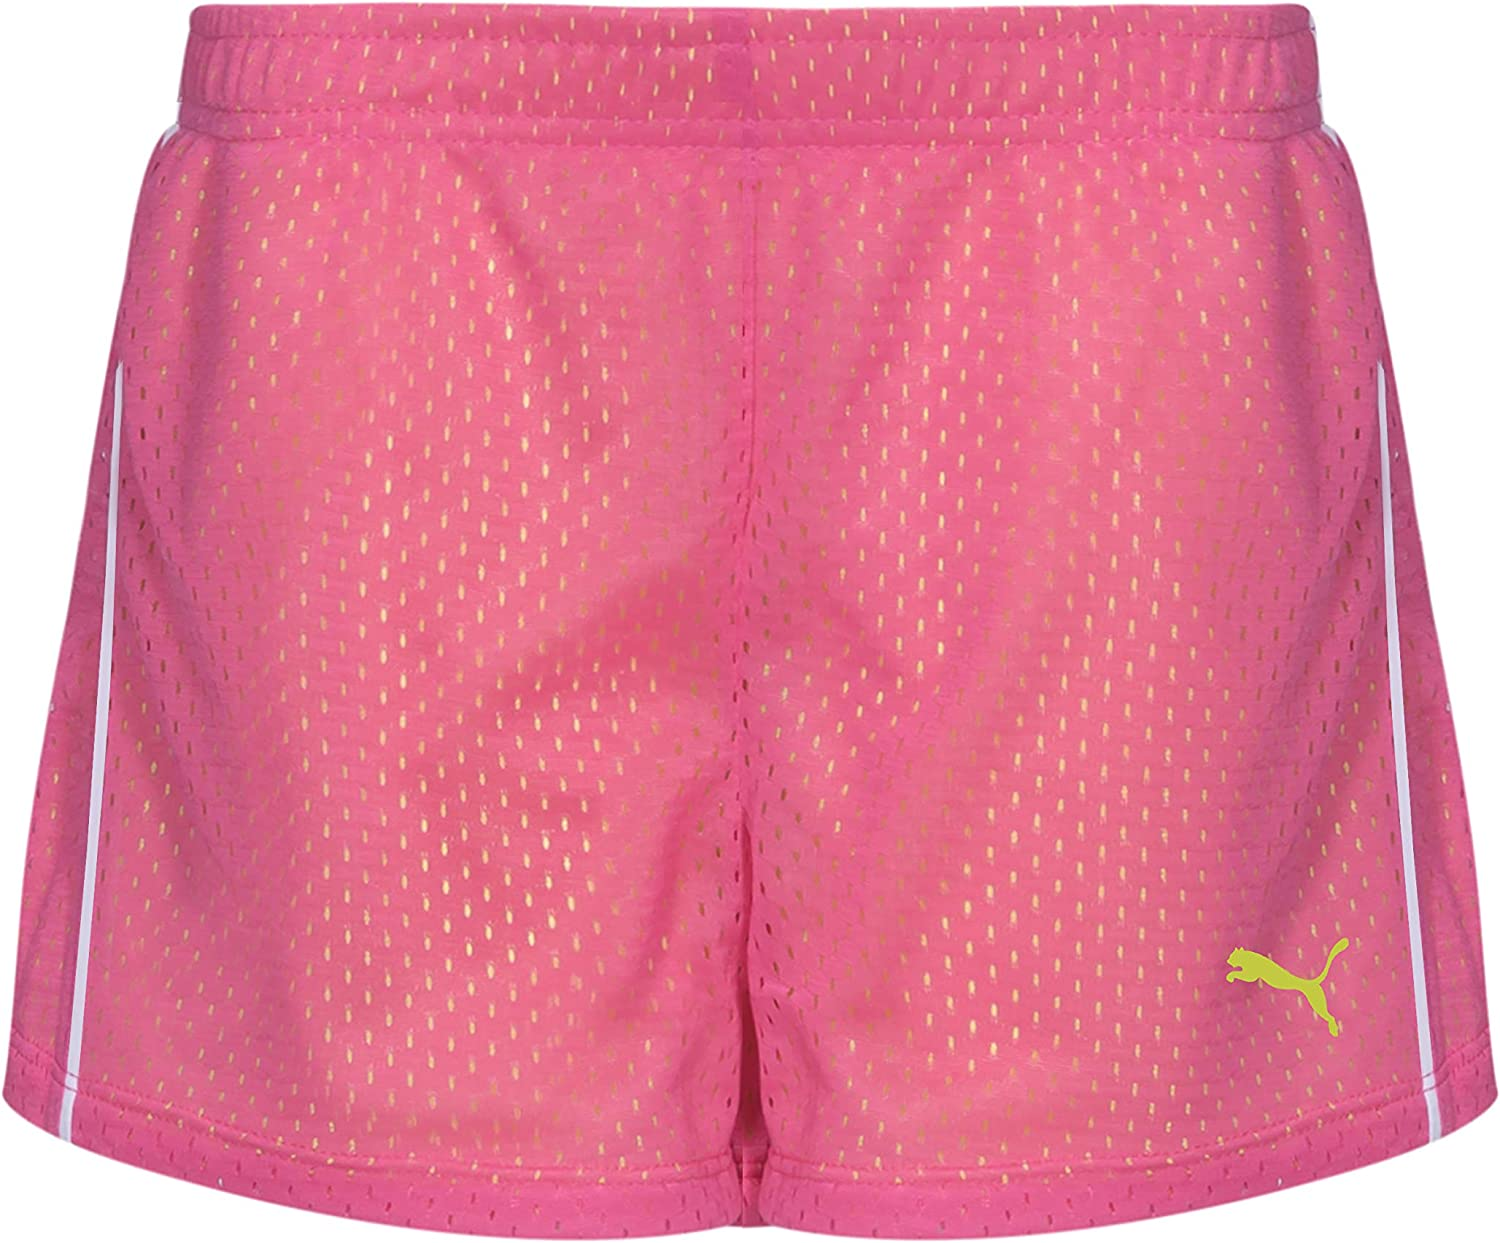 PUMA Girls' Active Mesh Short